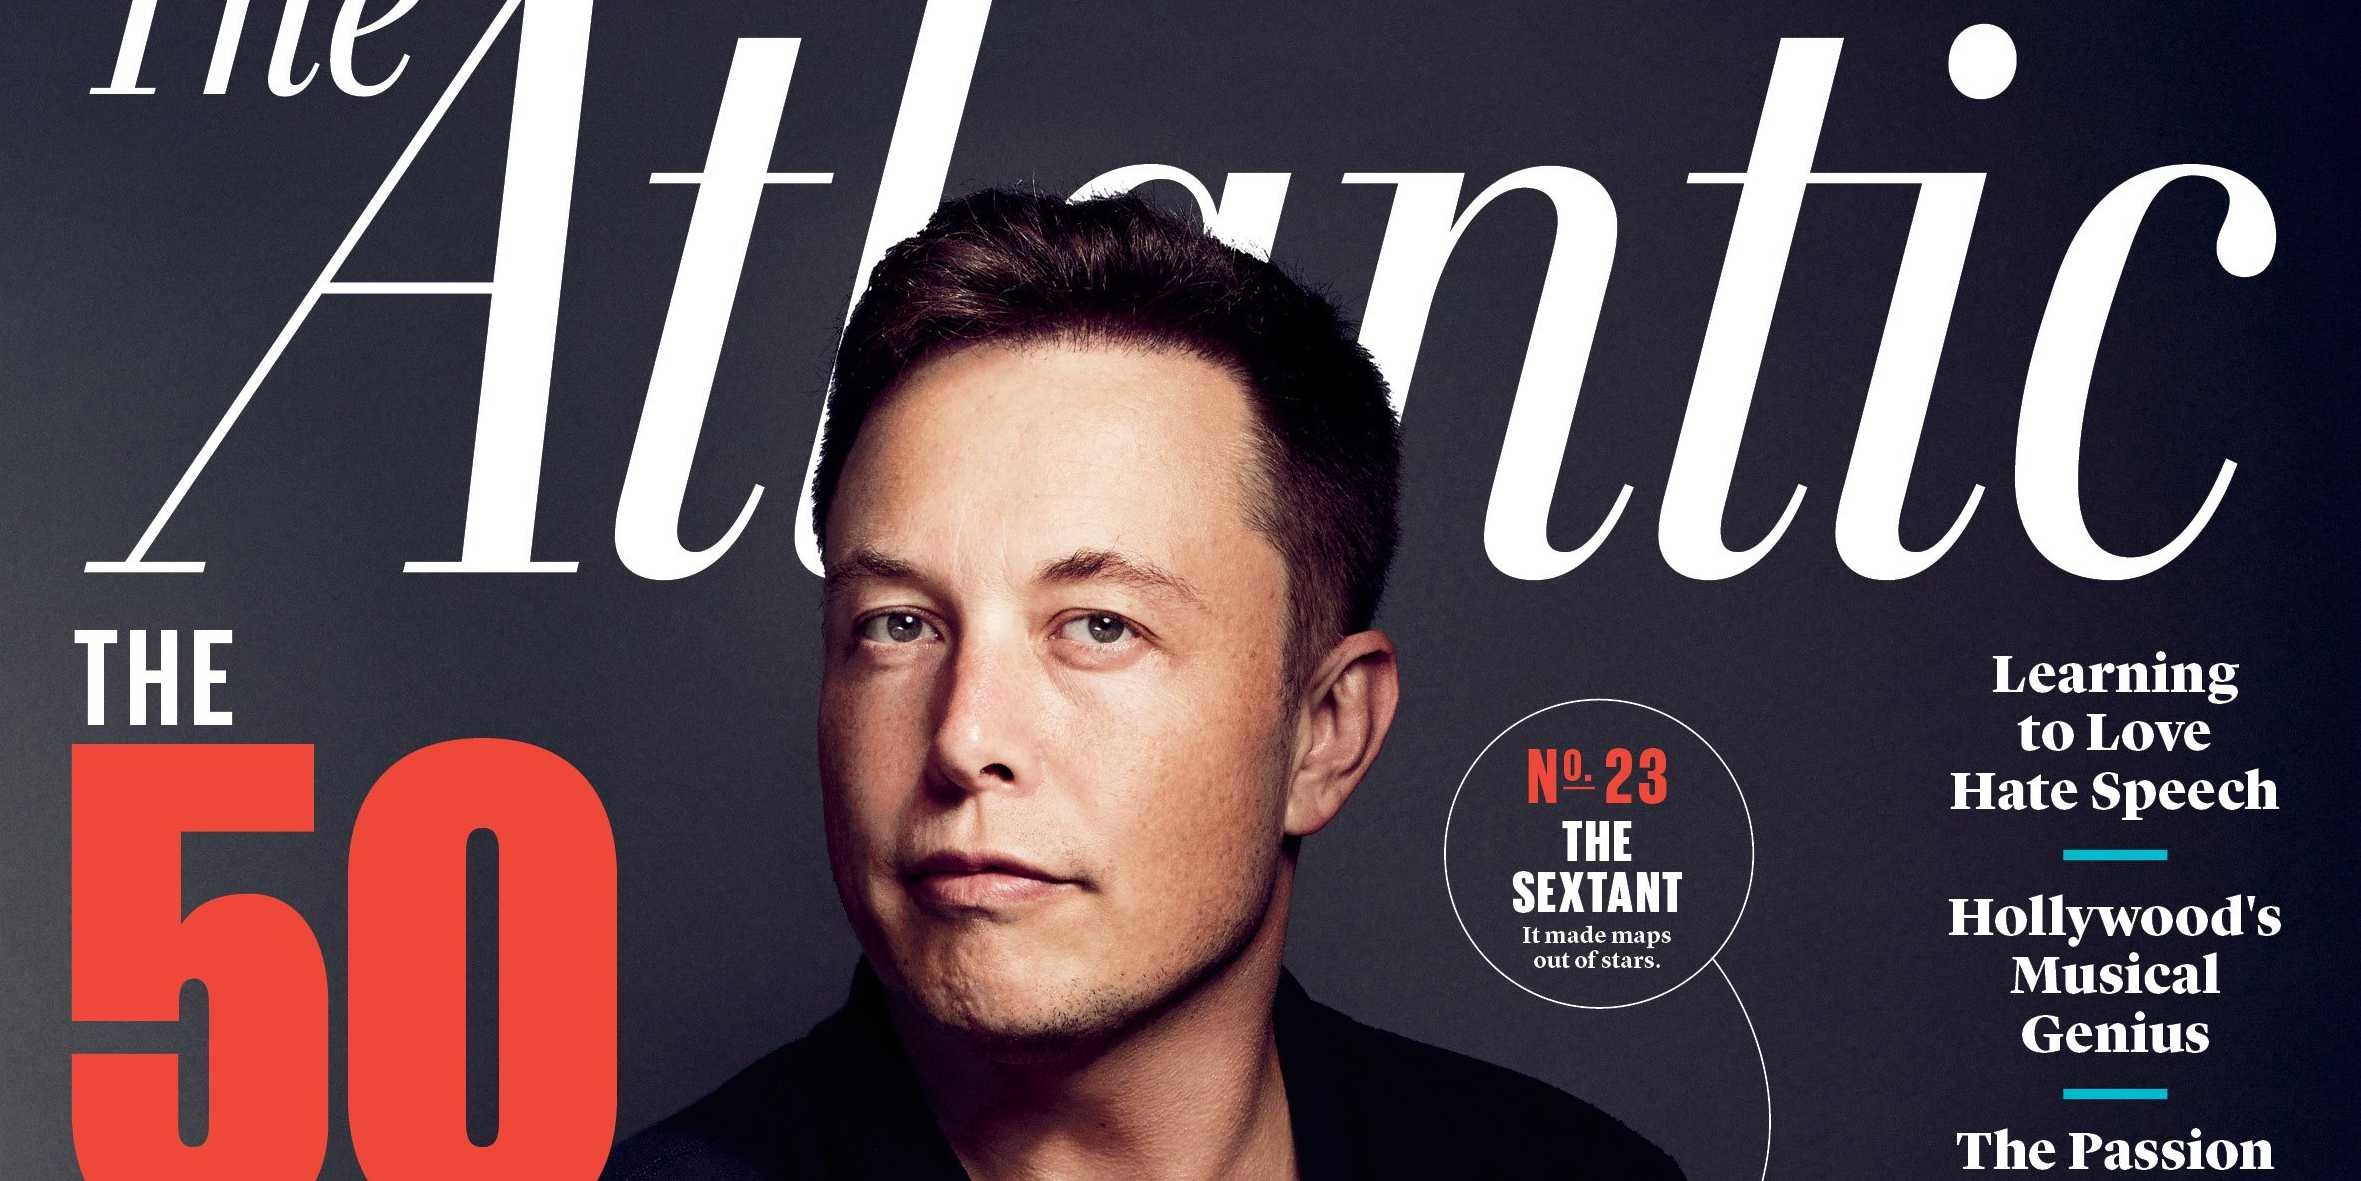 the-atlantic-asks-if-elon-musk-is-the-